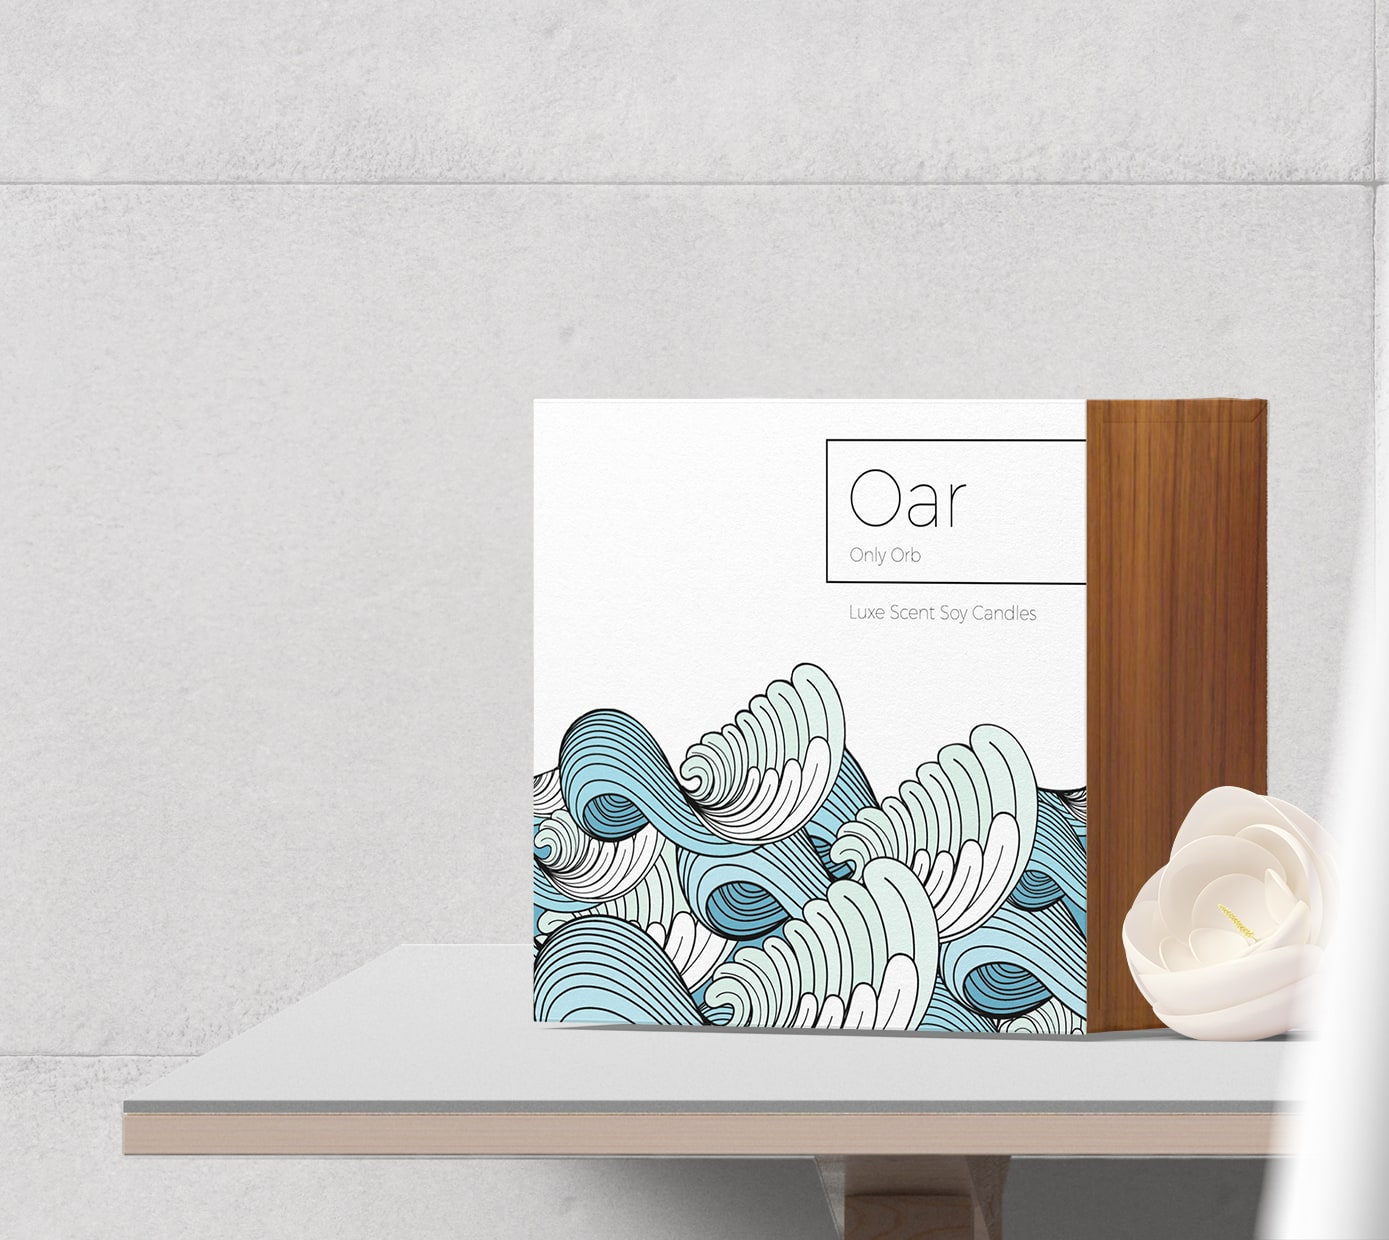 Box visualisation with waves for Oar candle